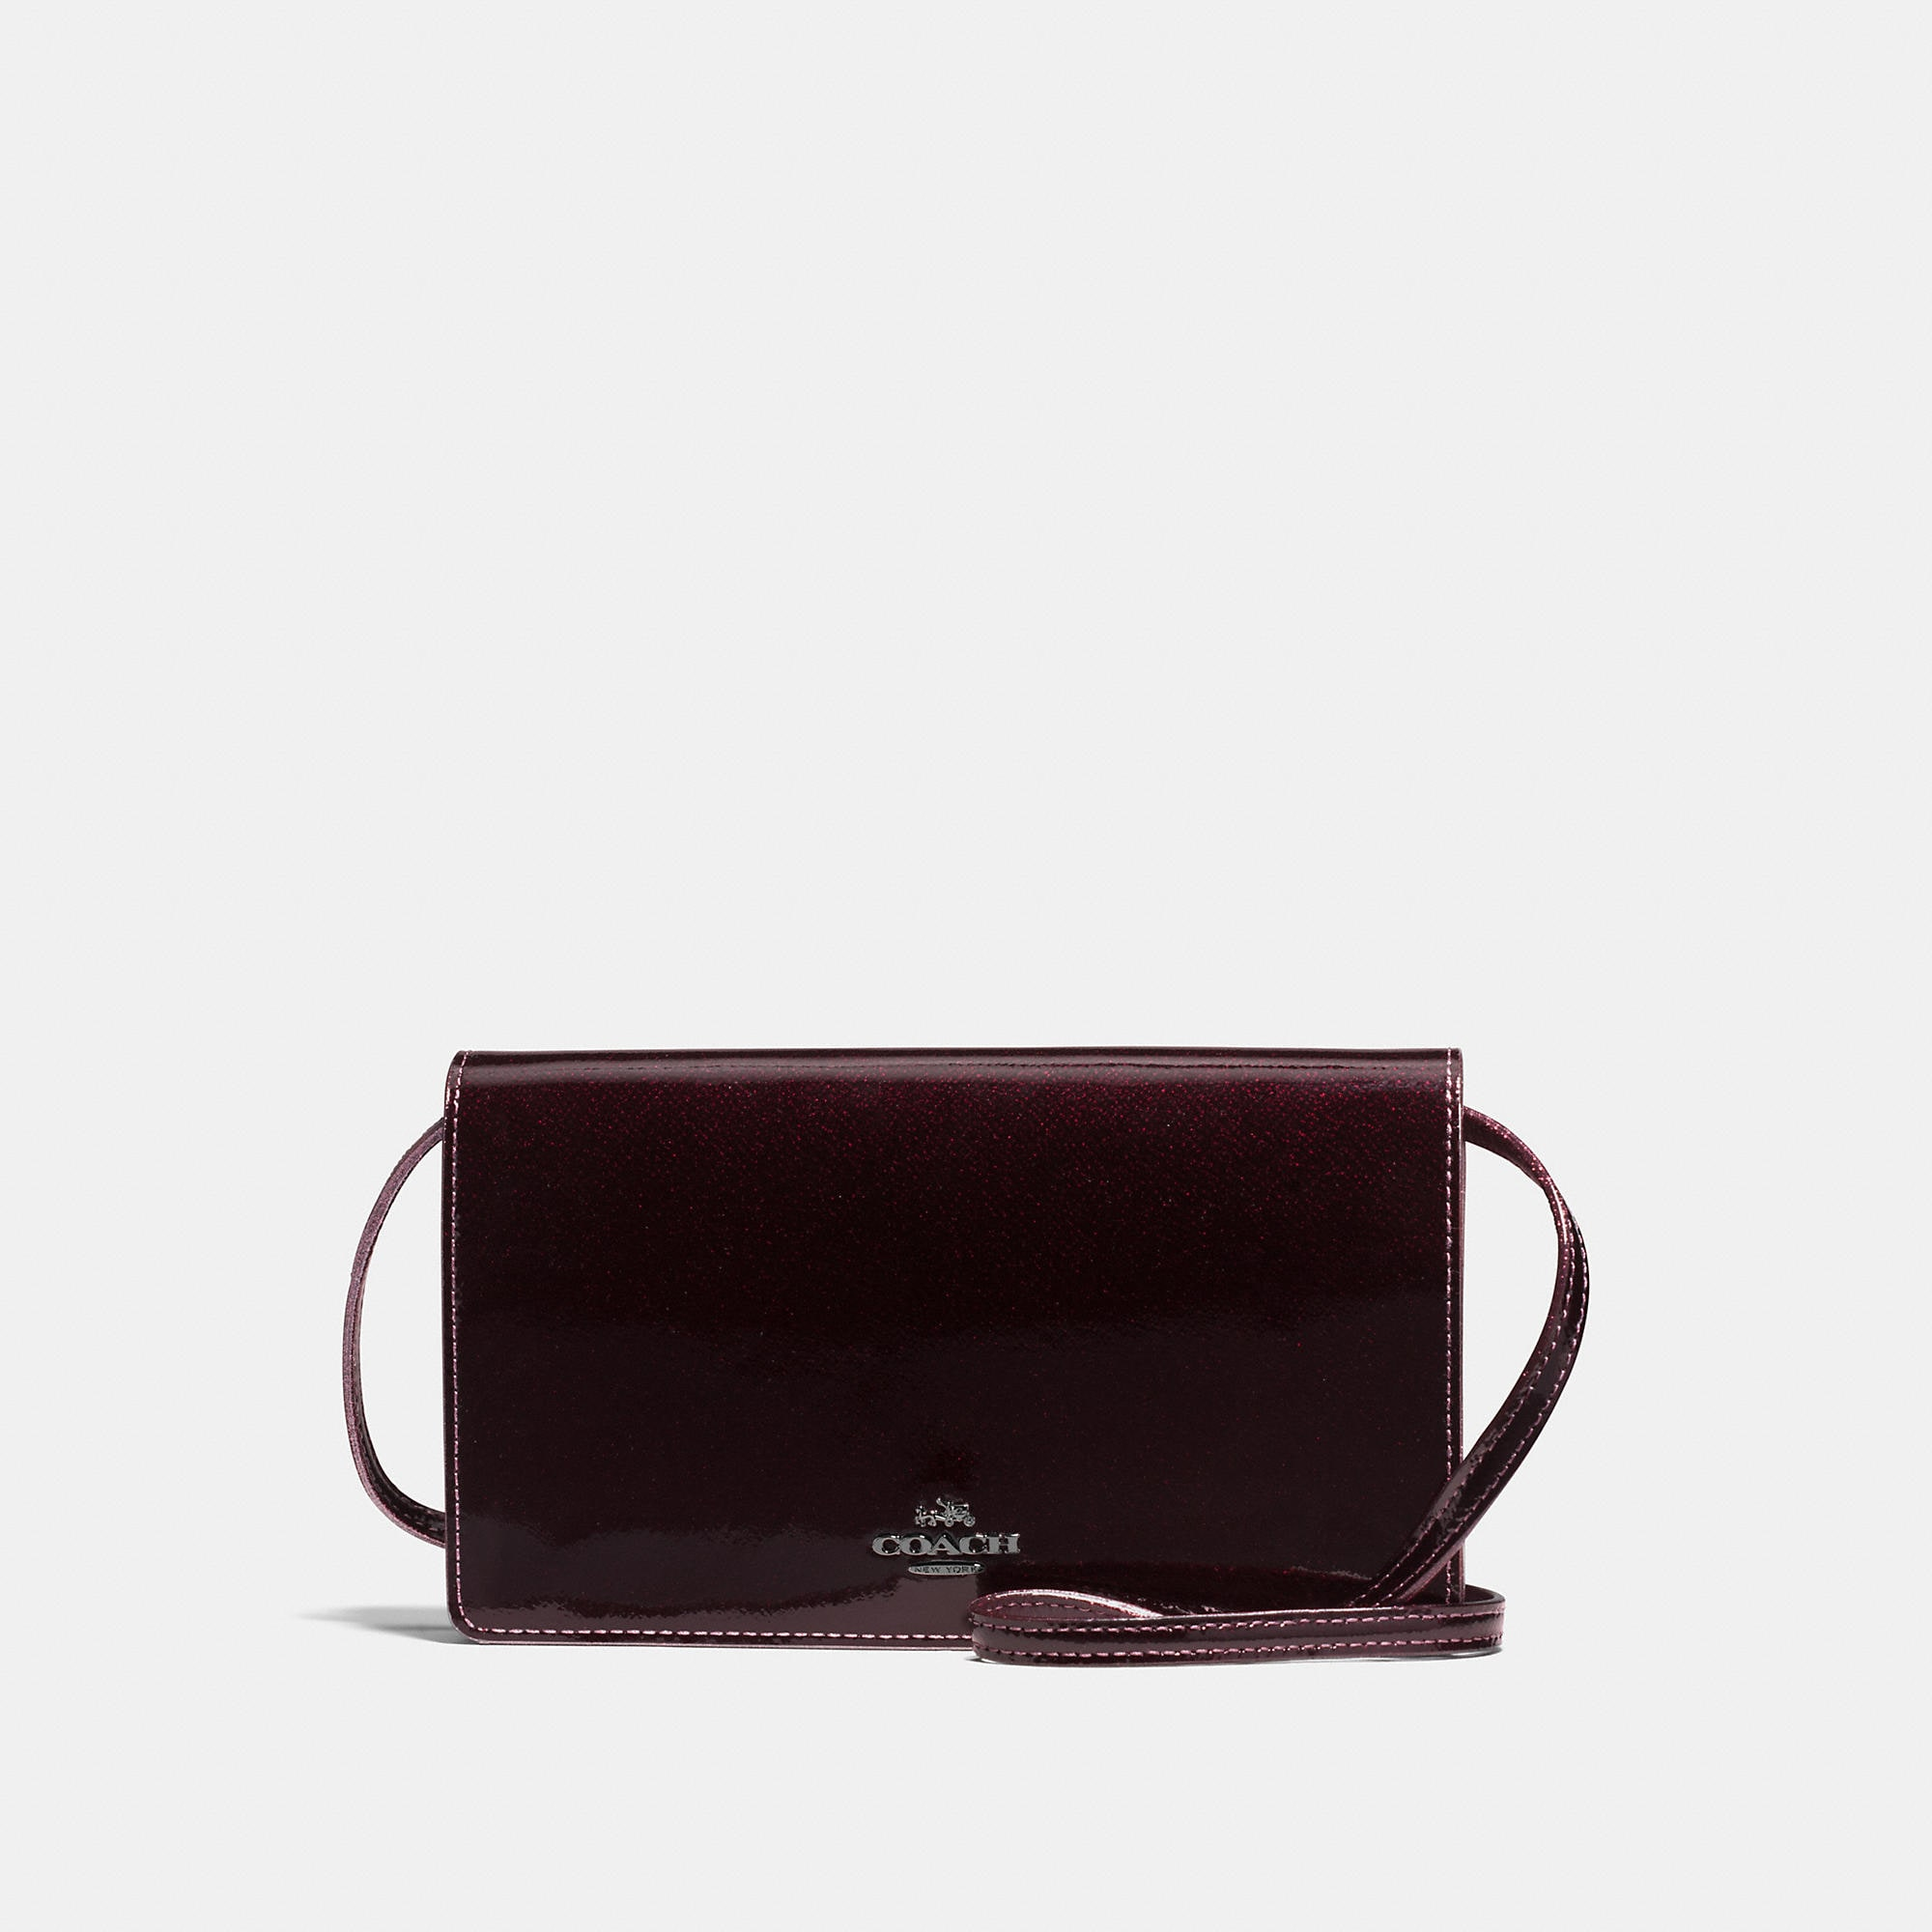 Coach Foldover Crossbody In Patent Leather